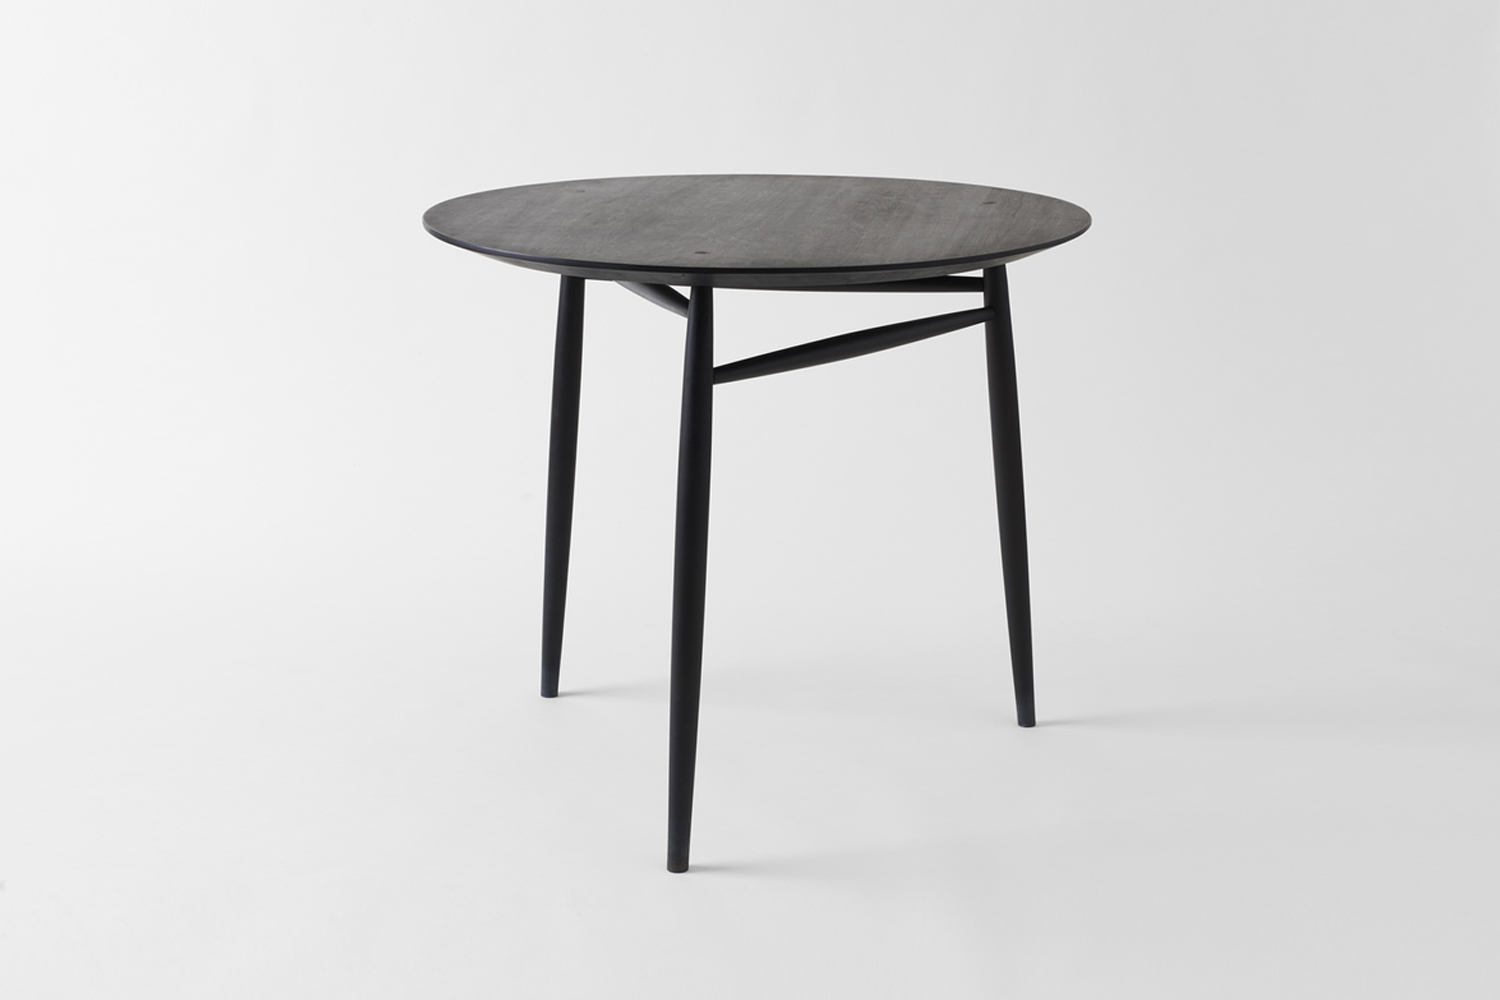 From Sawkille Co., the Ebonized Black Walnut Spindle Table is $5,000 at March.